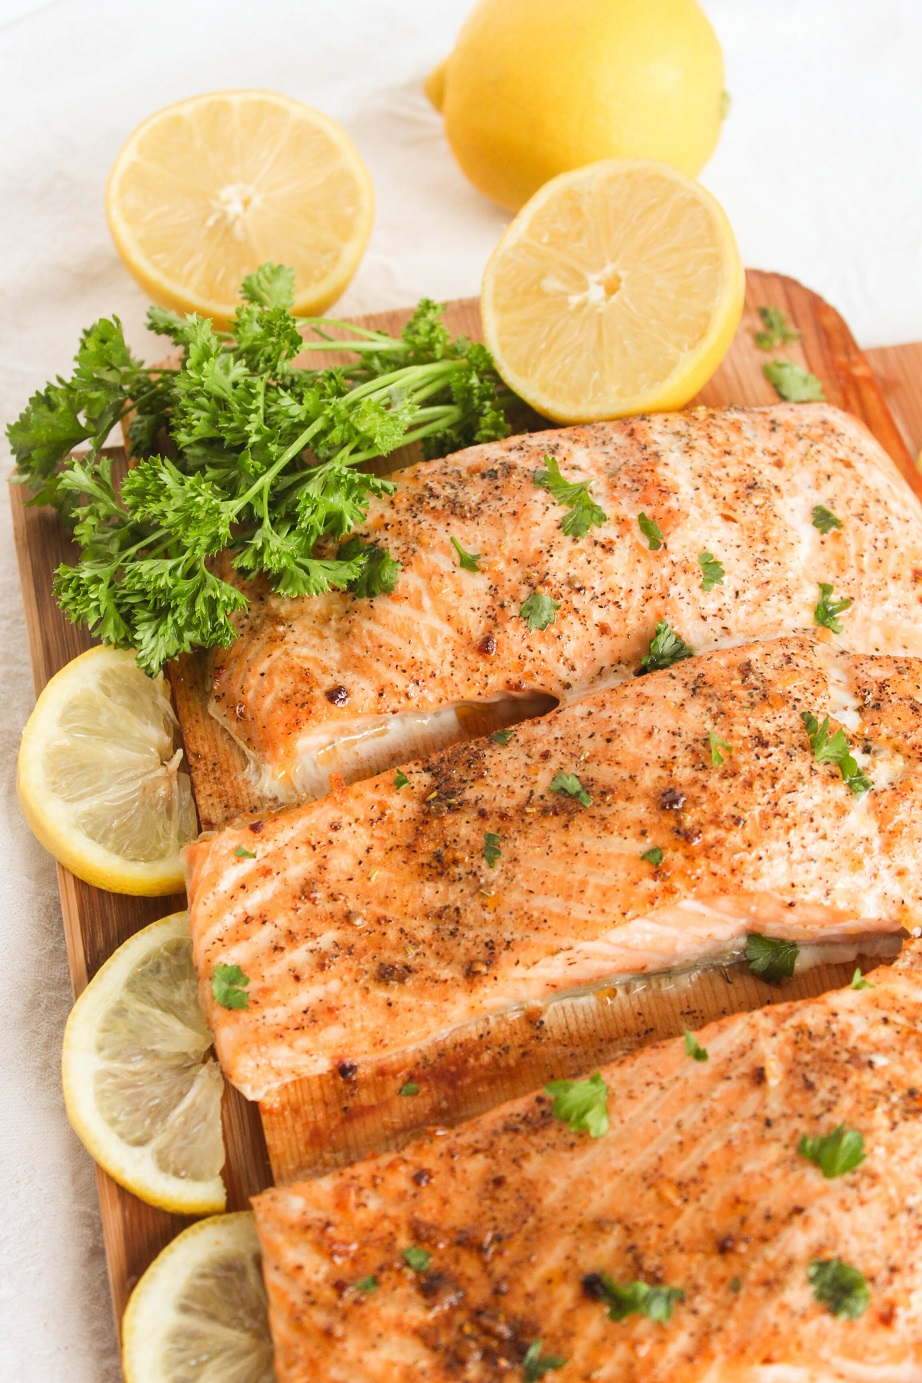 Baked Salmon with Herbs and Lemon - Delicious, flavorful and very easy to prepare.